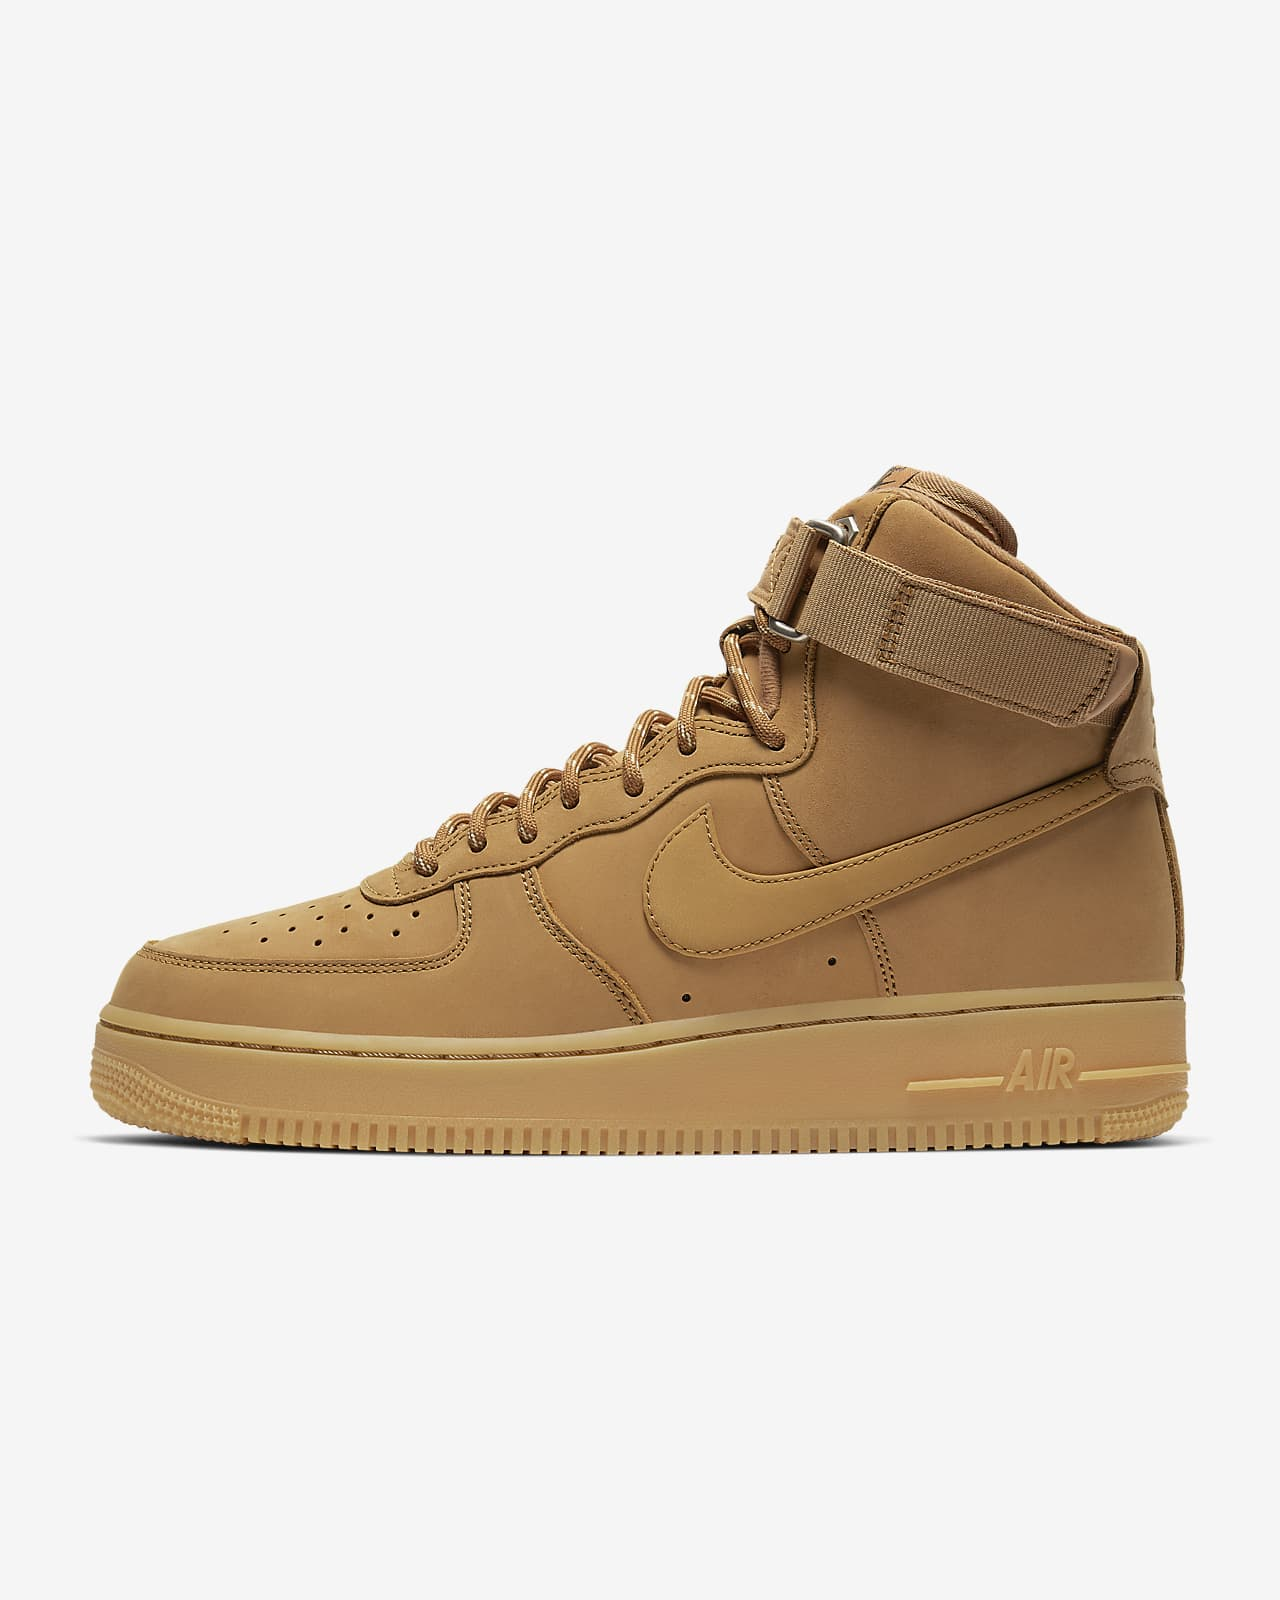 Nike Air Force 1 High '07 WB 男子运动鞋